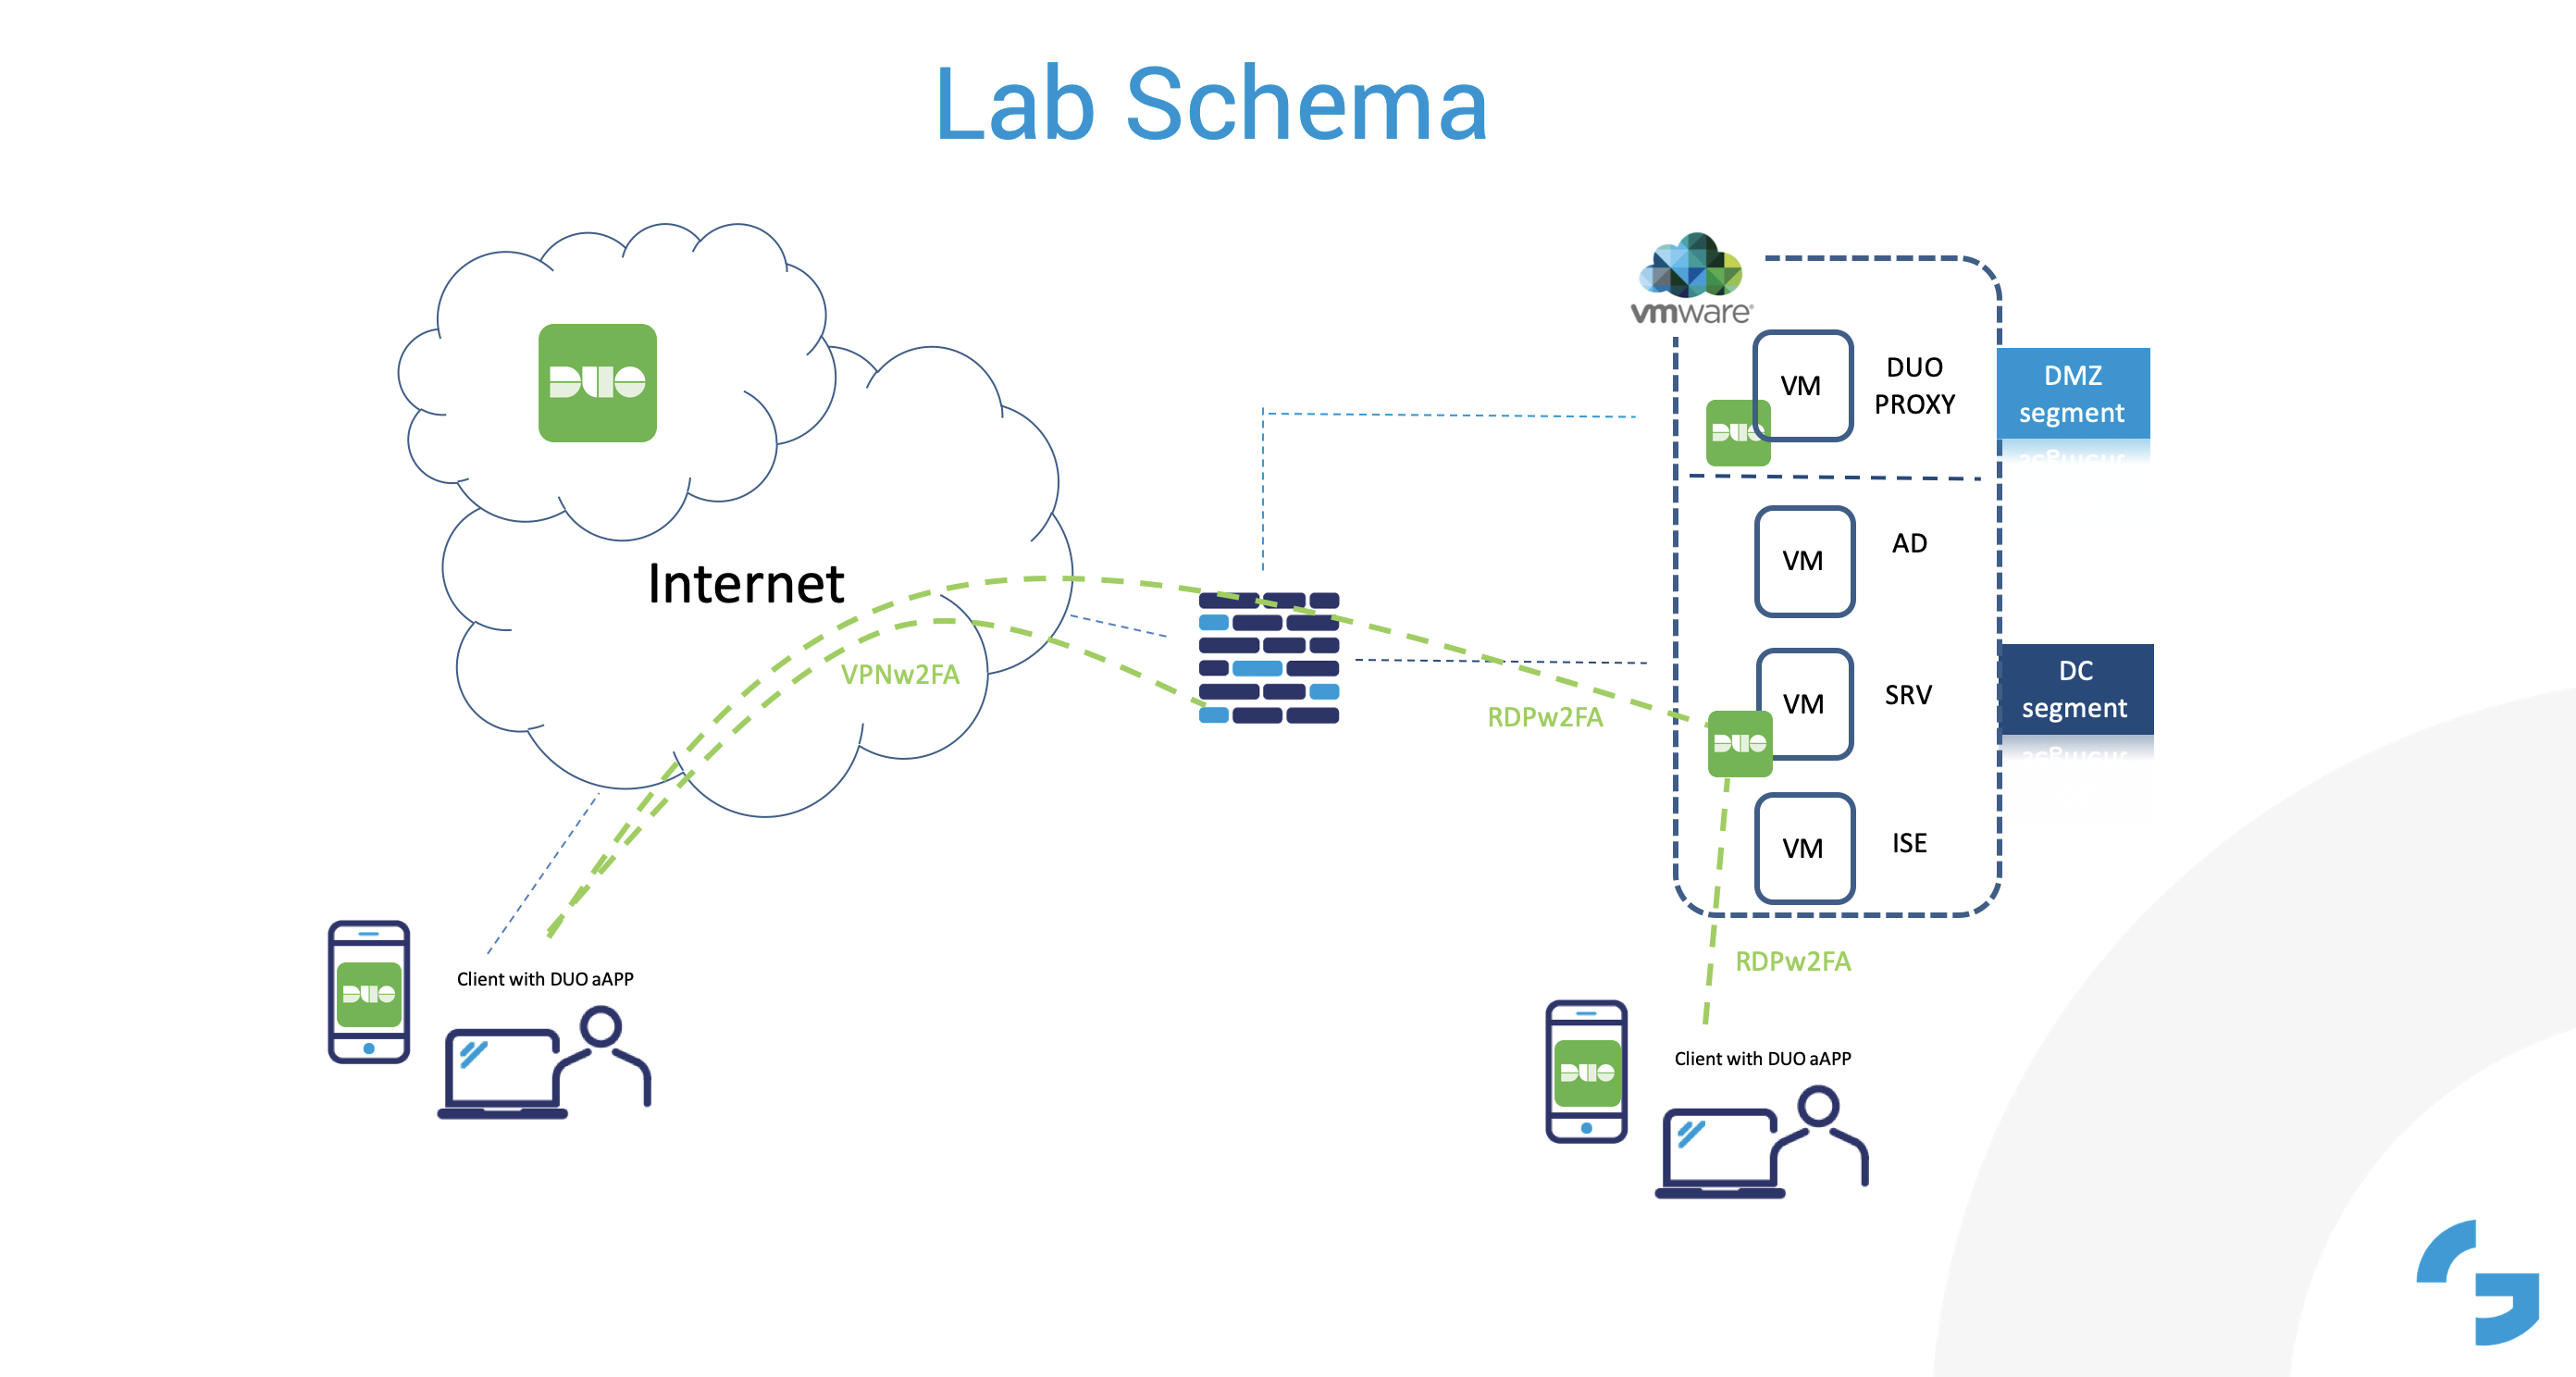 DUO_LAB_schema VPN remote access